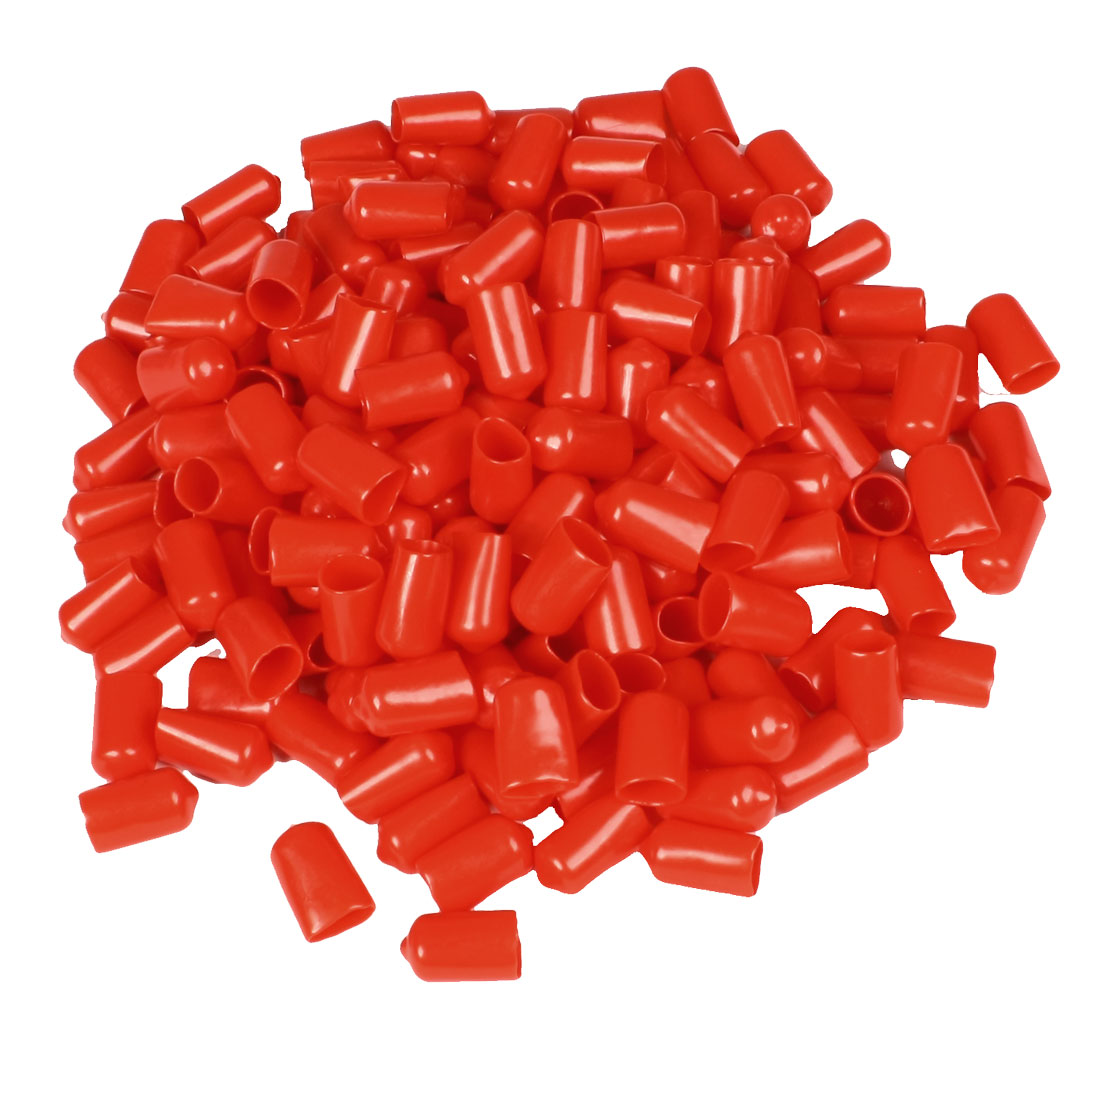 200 Pcs 22mm Height 12mm Inner Dia Round Tip Red PVC Insulated End Caps